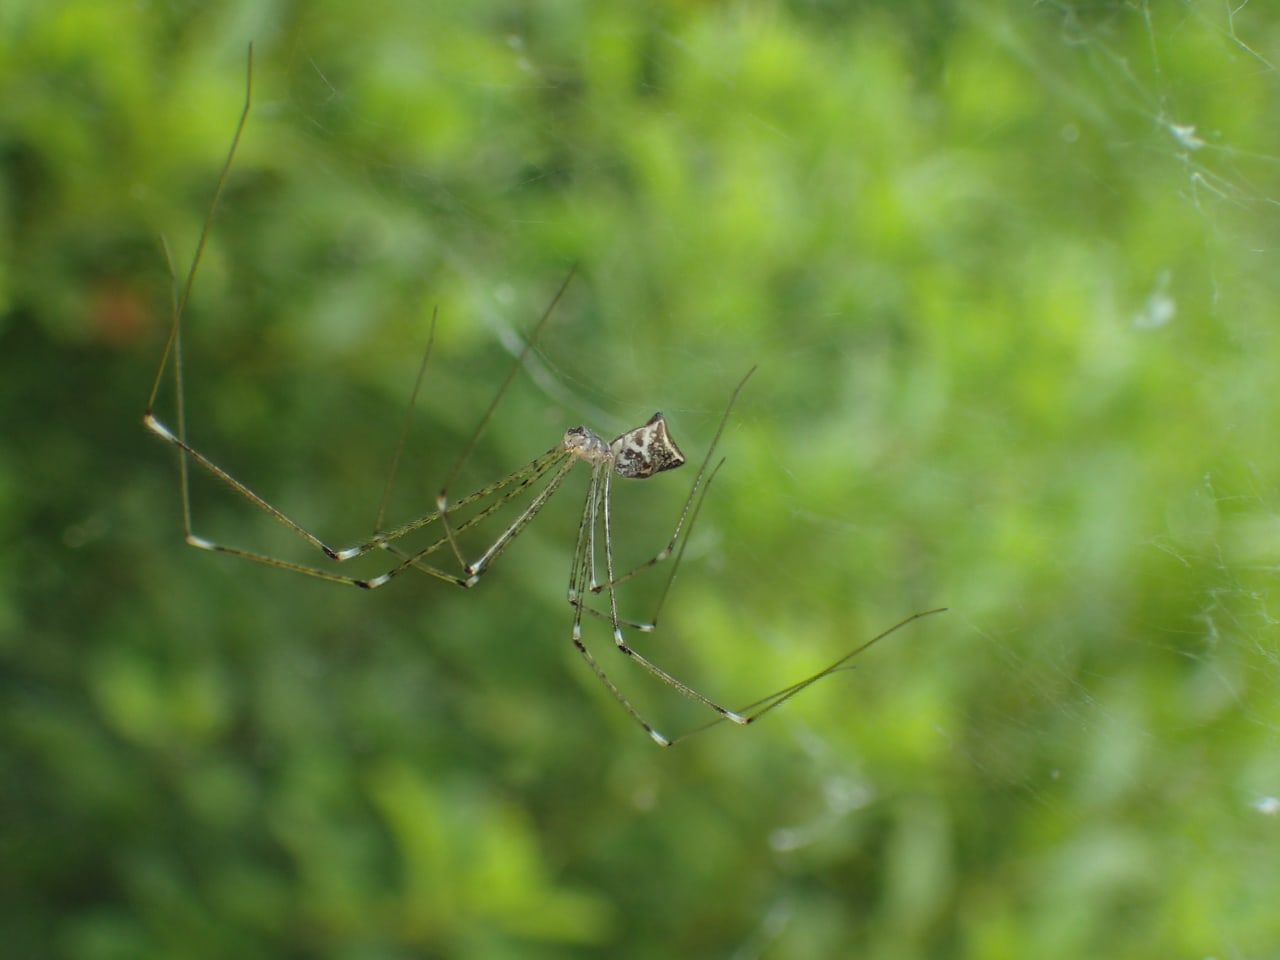 Picture of Crossopriza lyoni (Tailed Daddy Longlegs) - Lateral